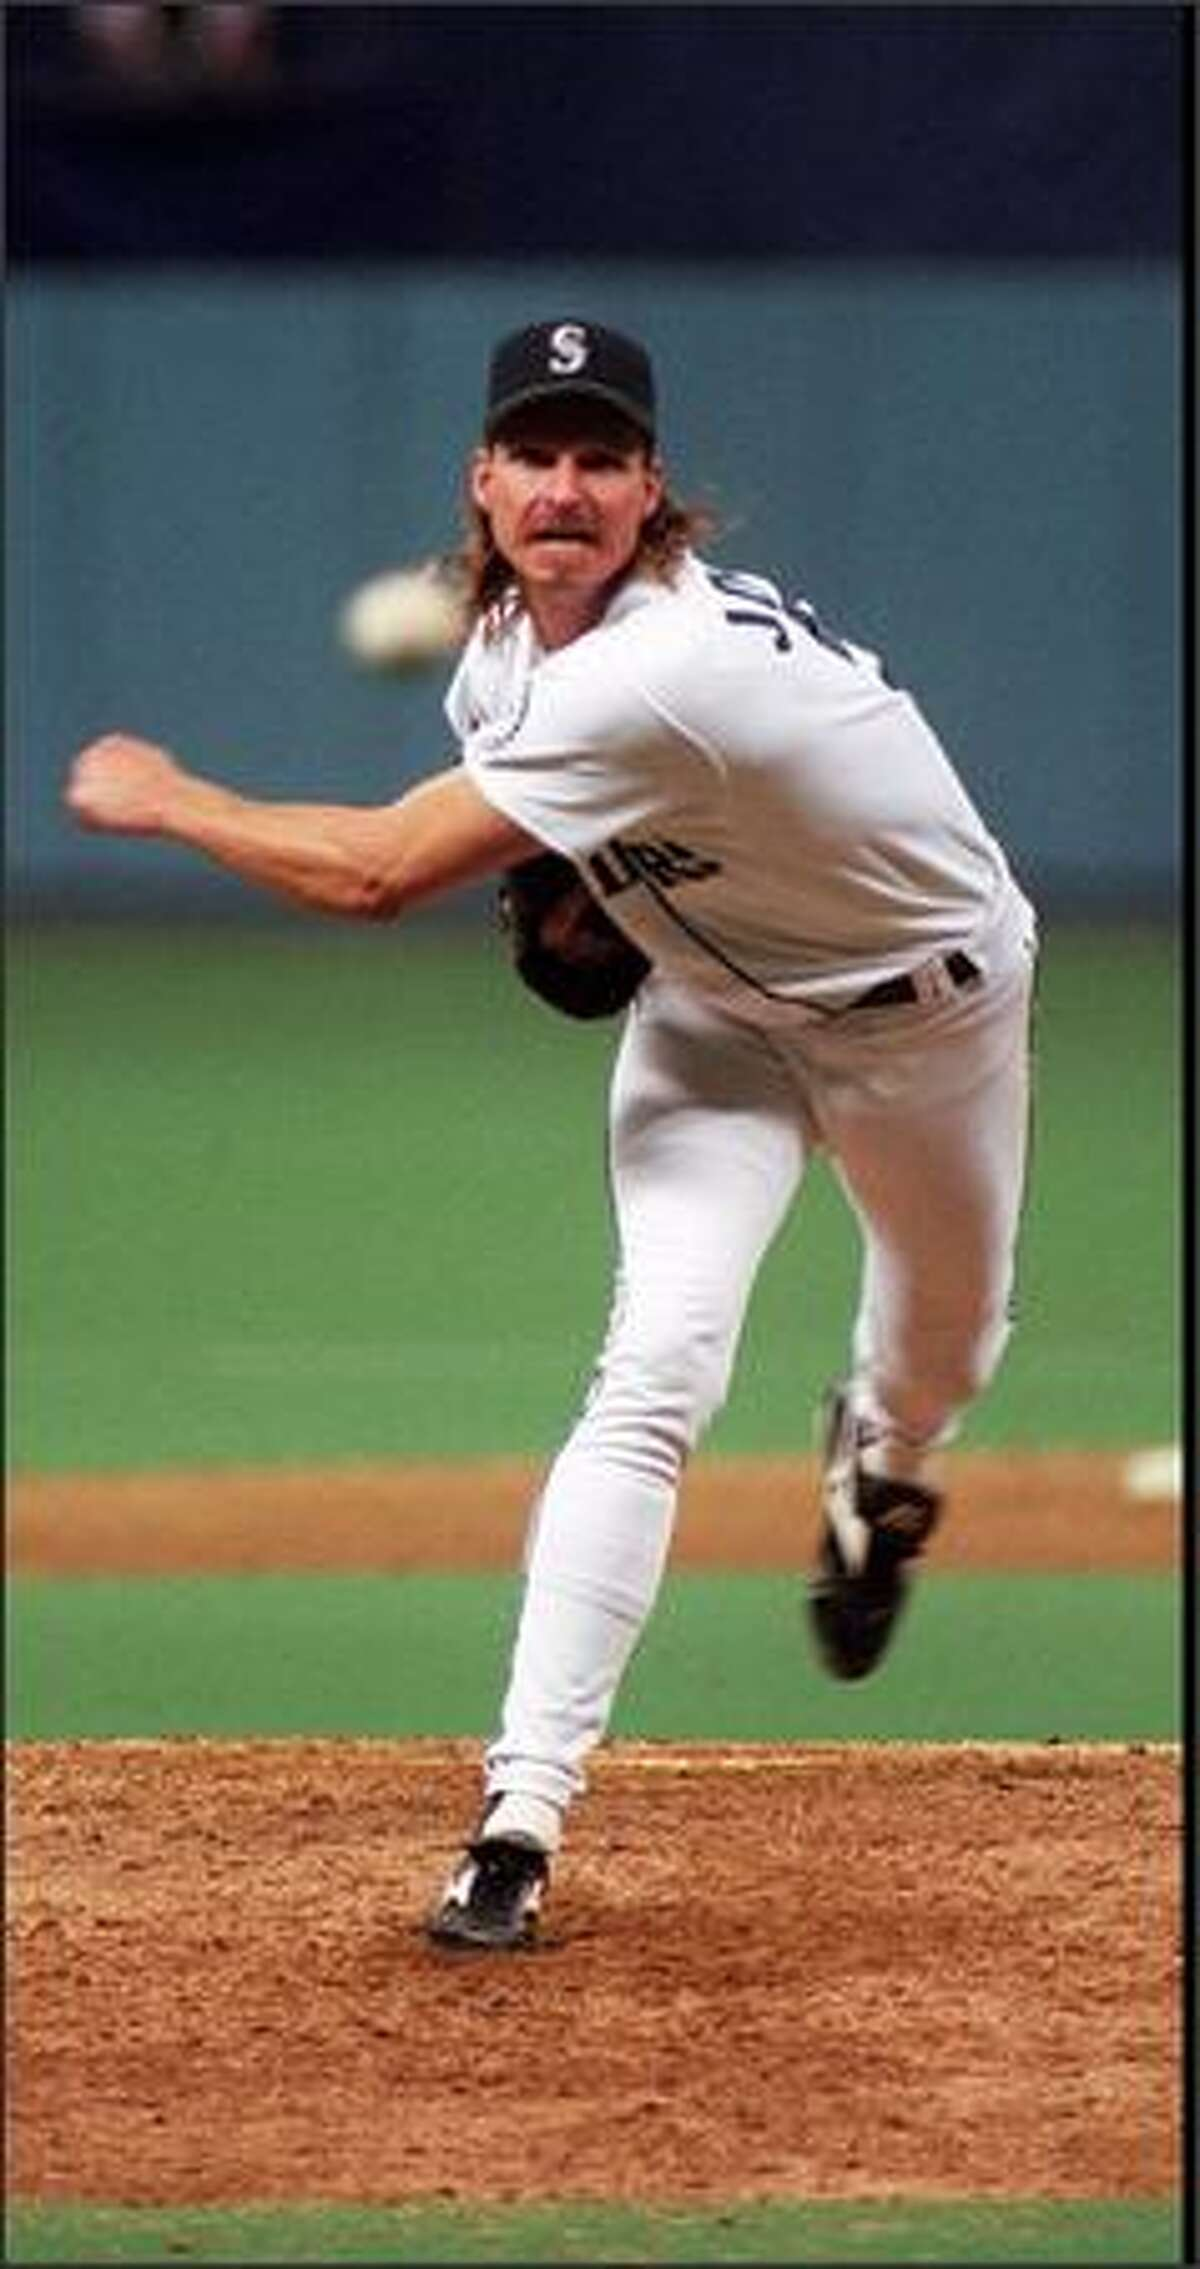 Mariners Randy Johnson delivers a pitch in the October 2, 1995 playoff game to decide AL West championship.